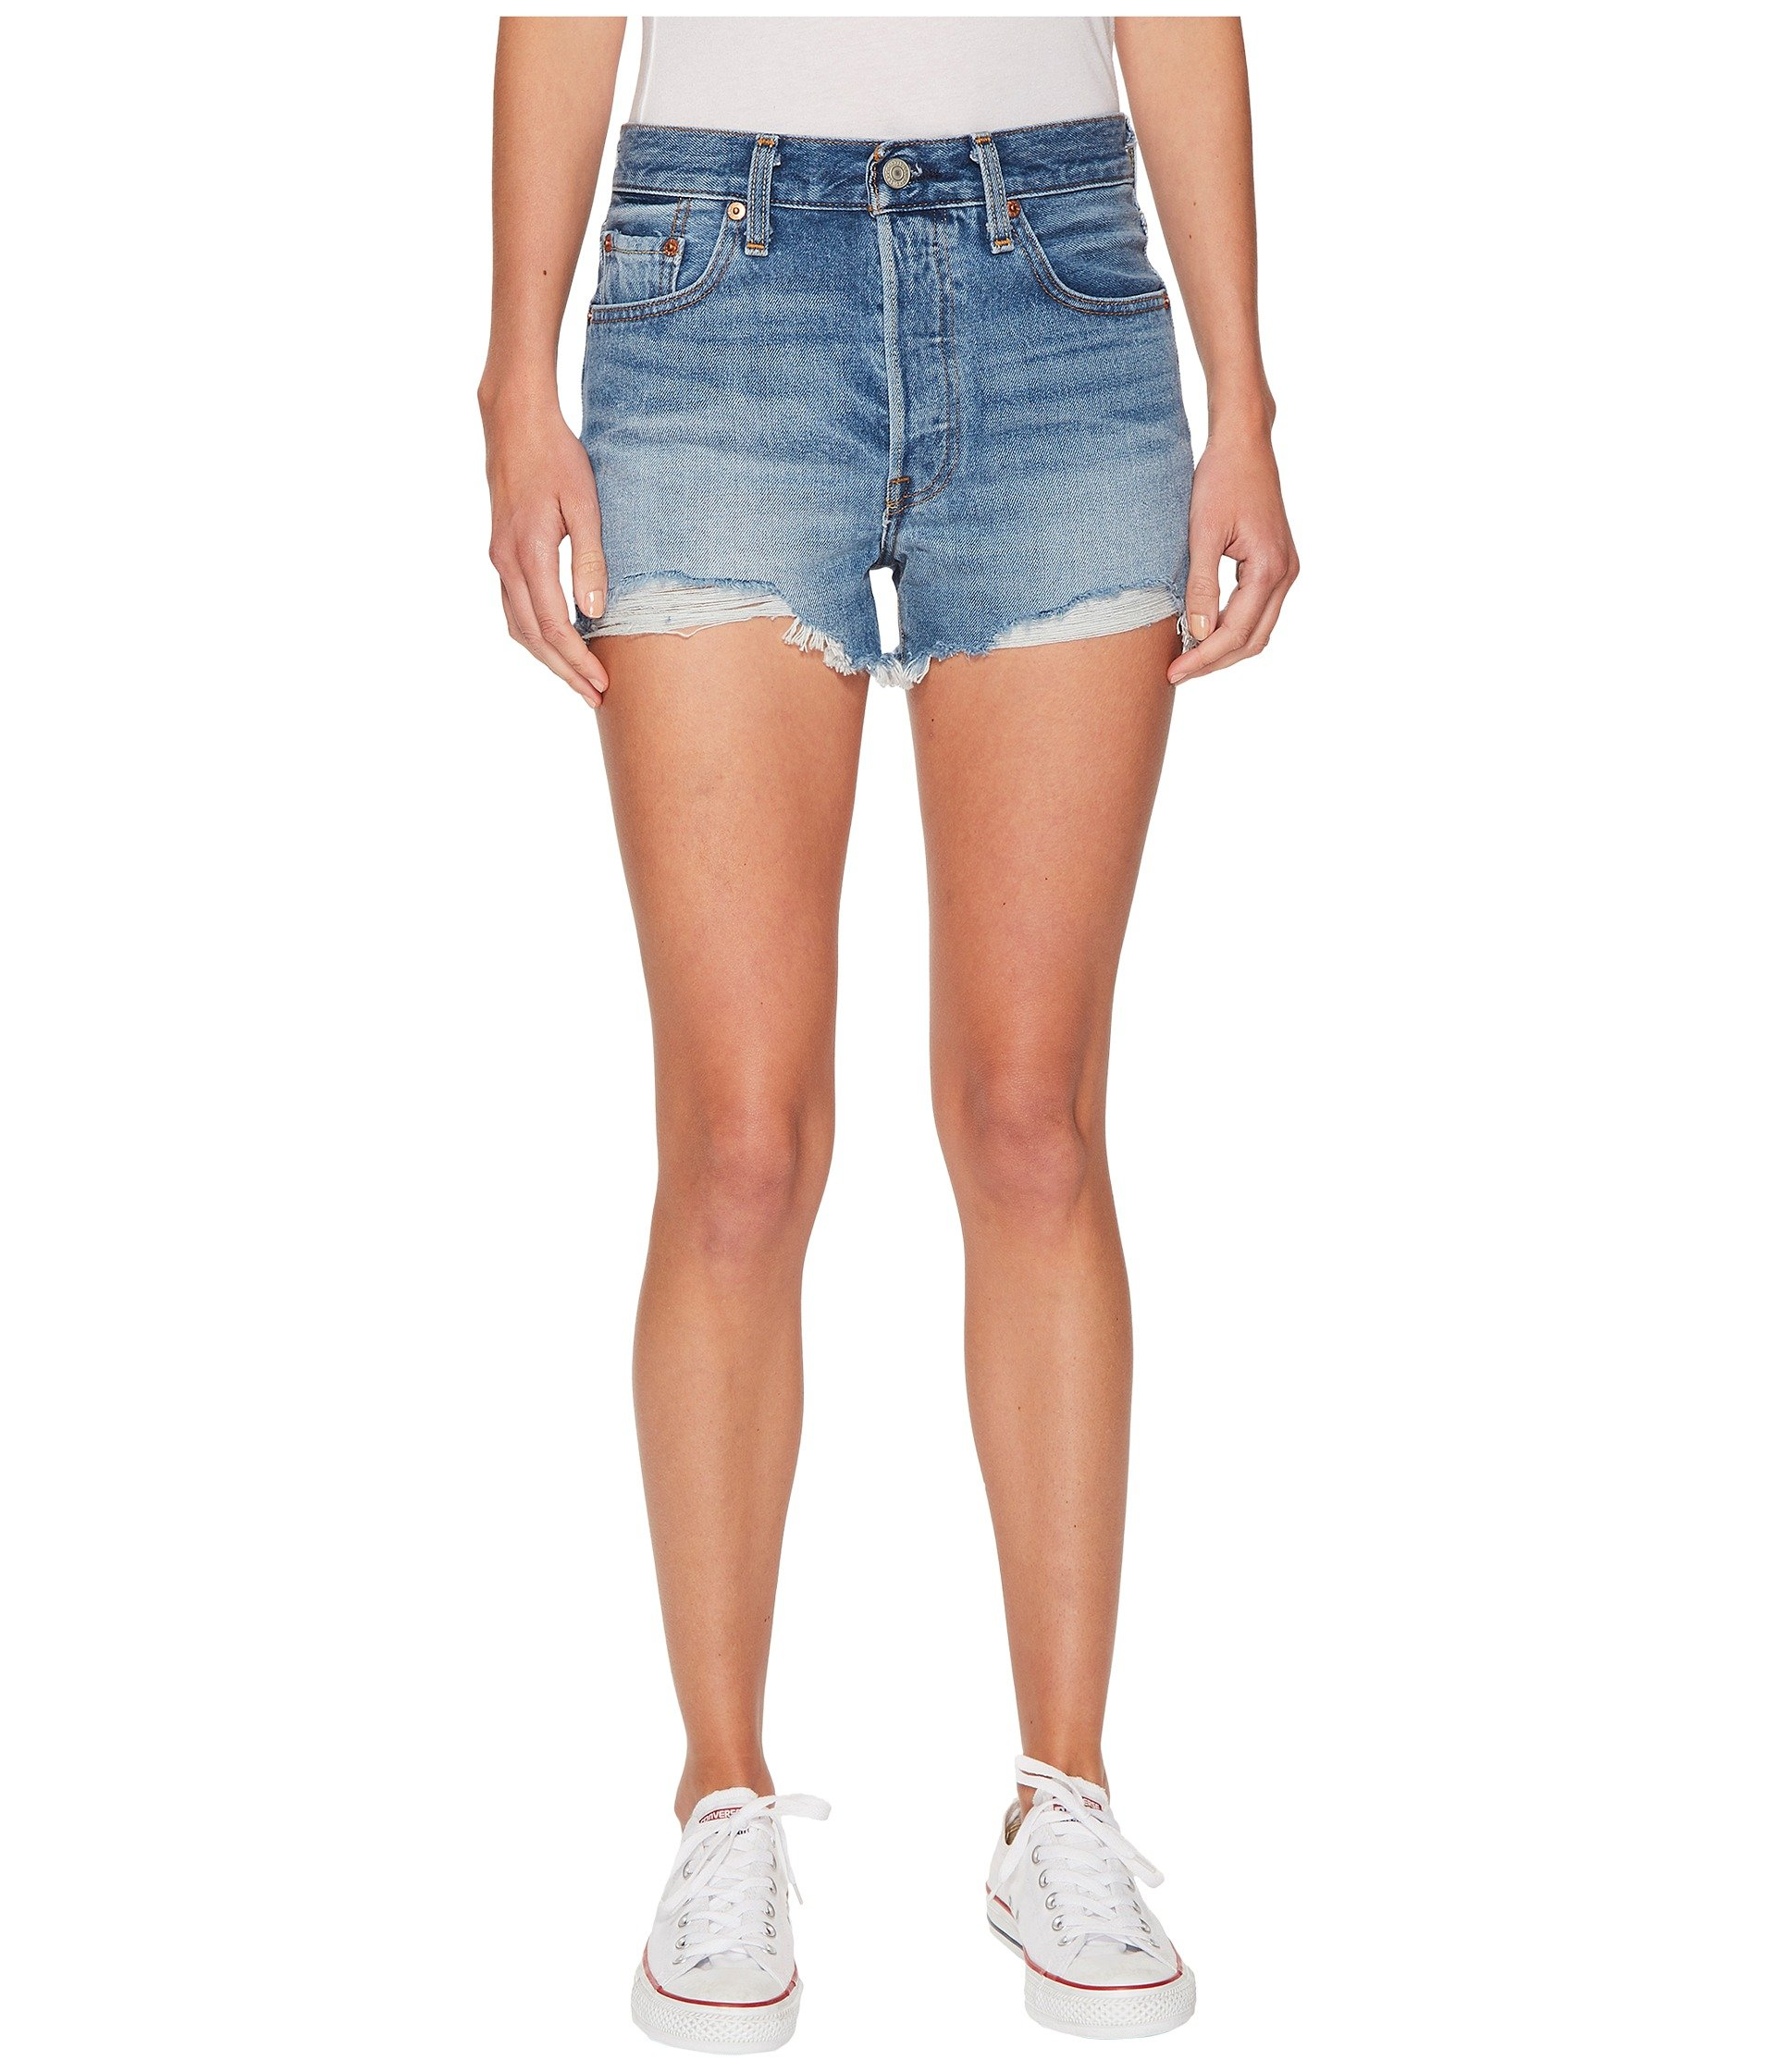 Levi's Women's 501 High Rise Shorts, Bring to Light, 32 (US 14)